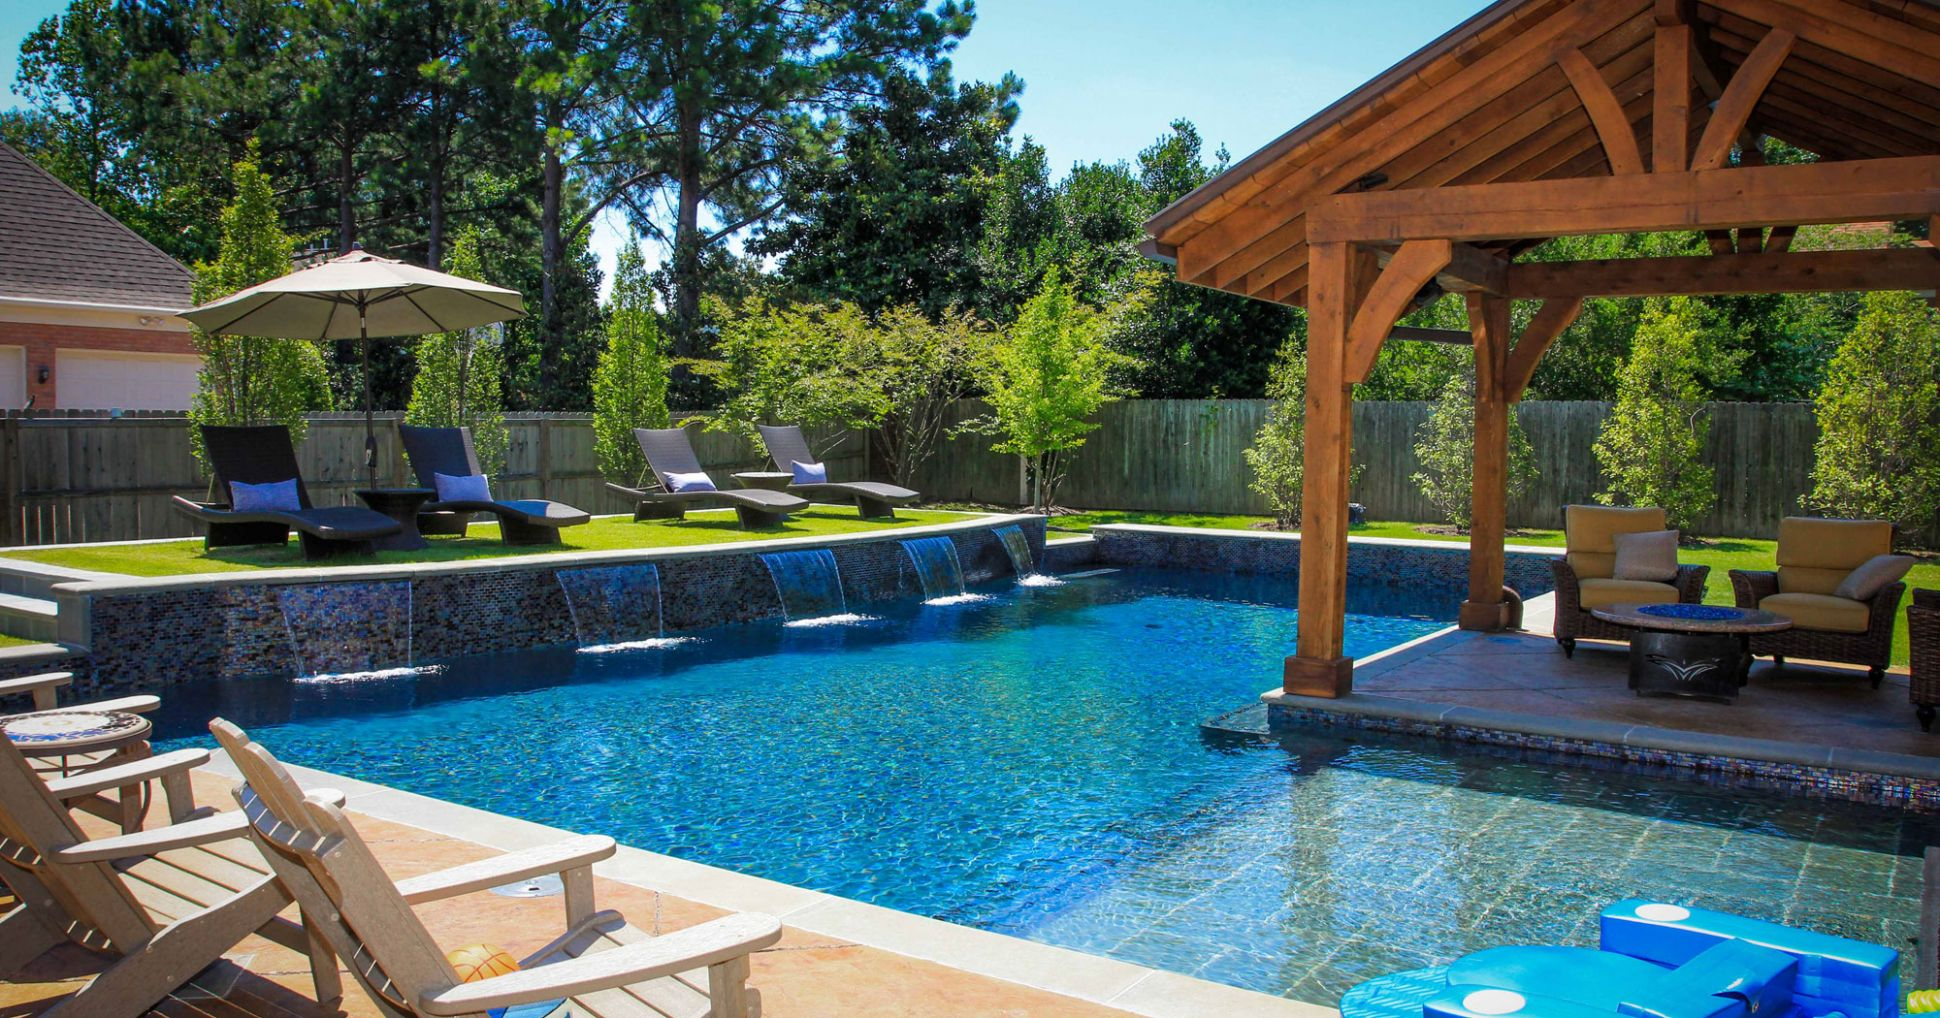 9 Backyard Pool Ideas for the Wealthy Homeowner - backyard ideas pool